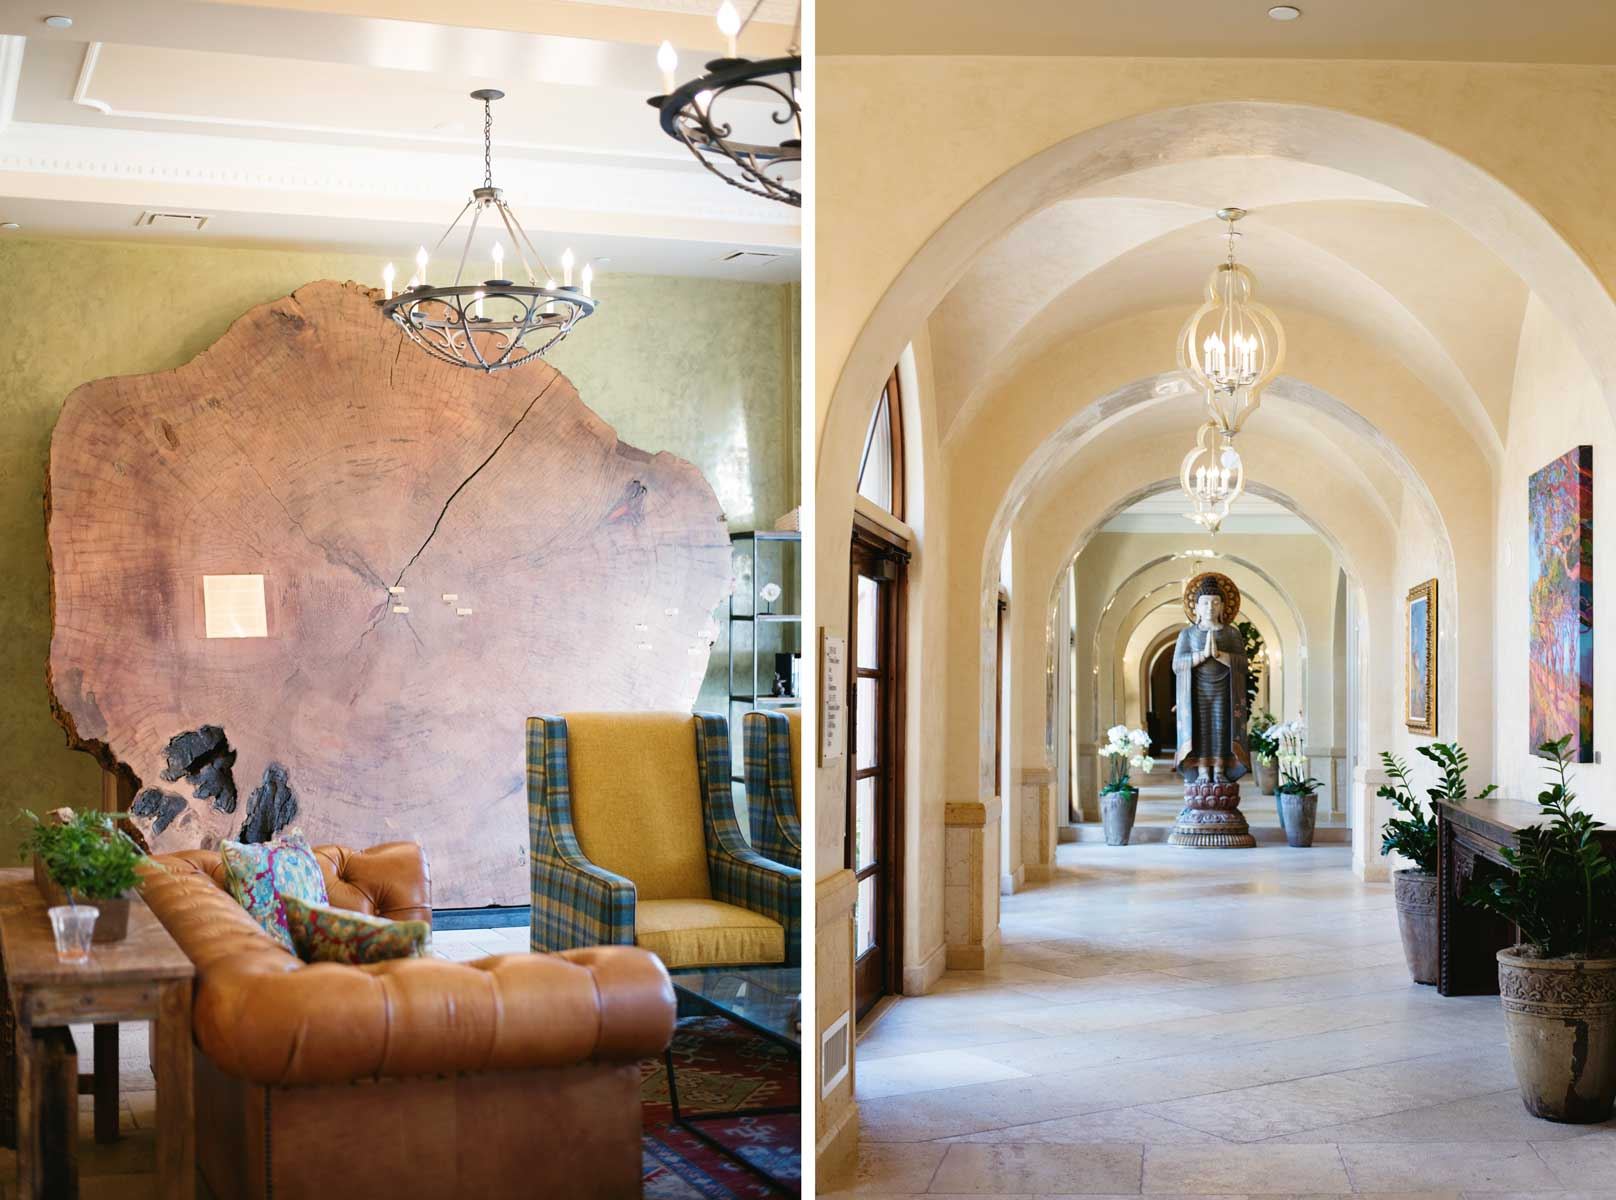 Paso Robles Travel Guide & Things to Do - Luxury Boutique Hotel Resort